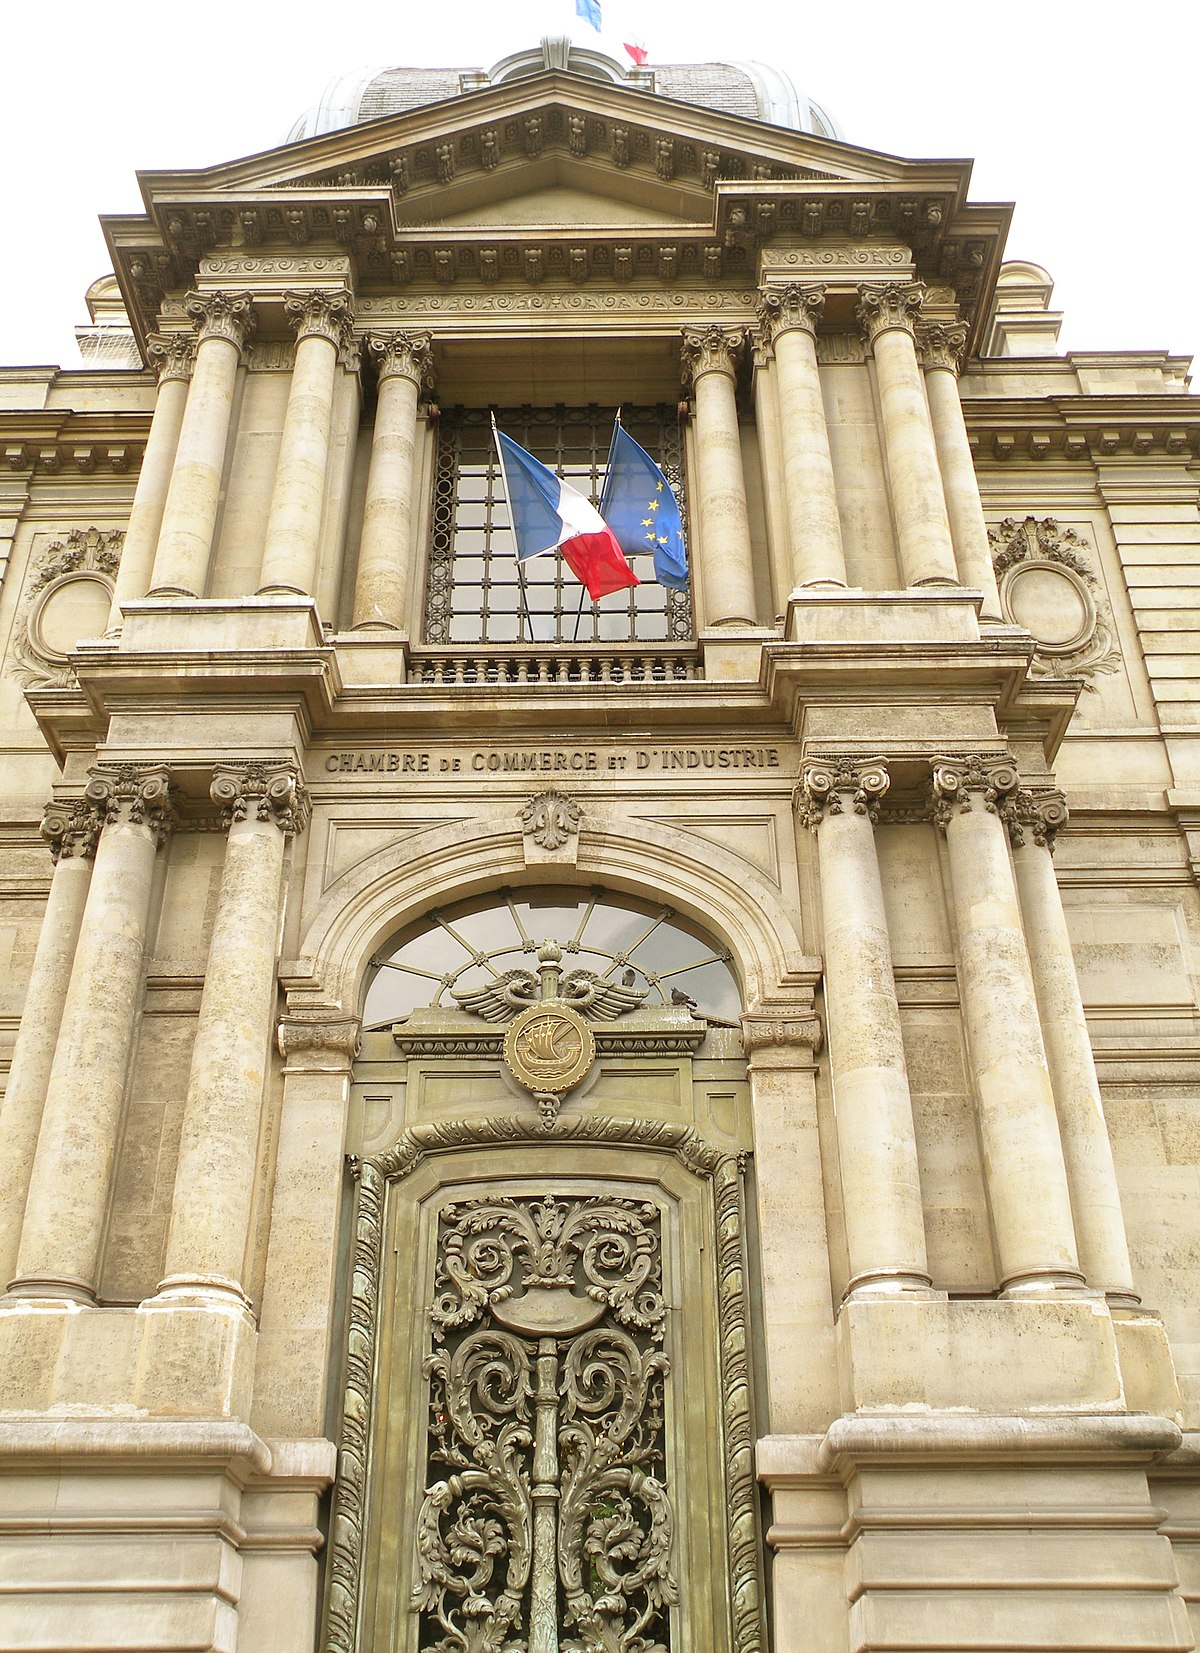 H tel potocki wikip dia for Chambre de commerce internationale paris adresse